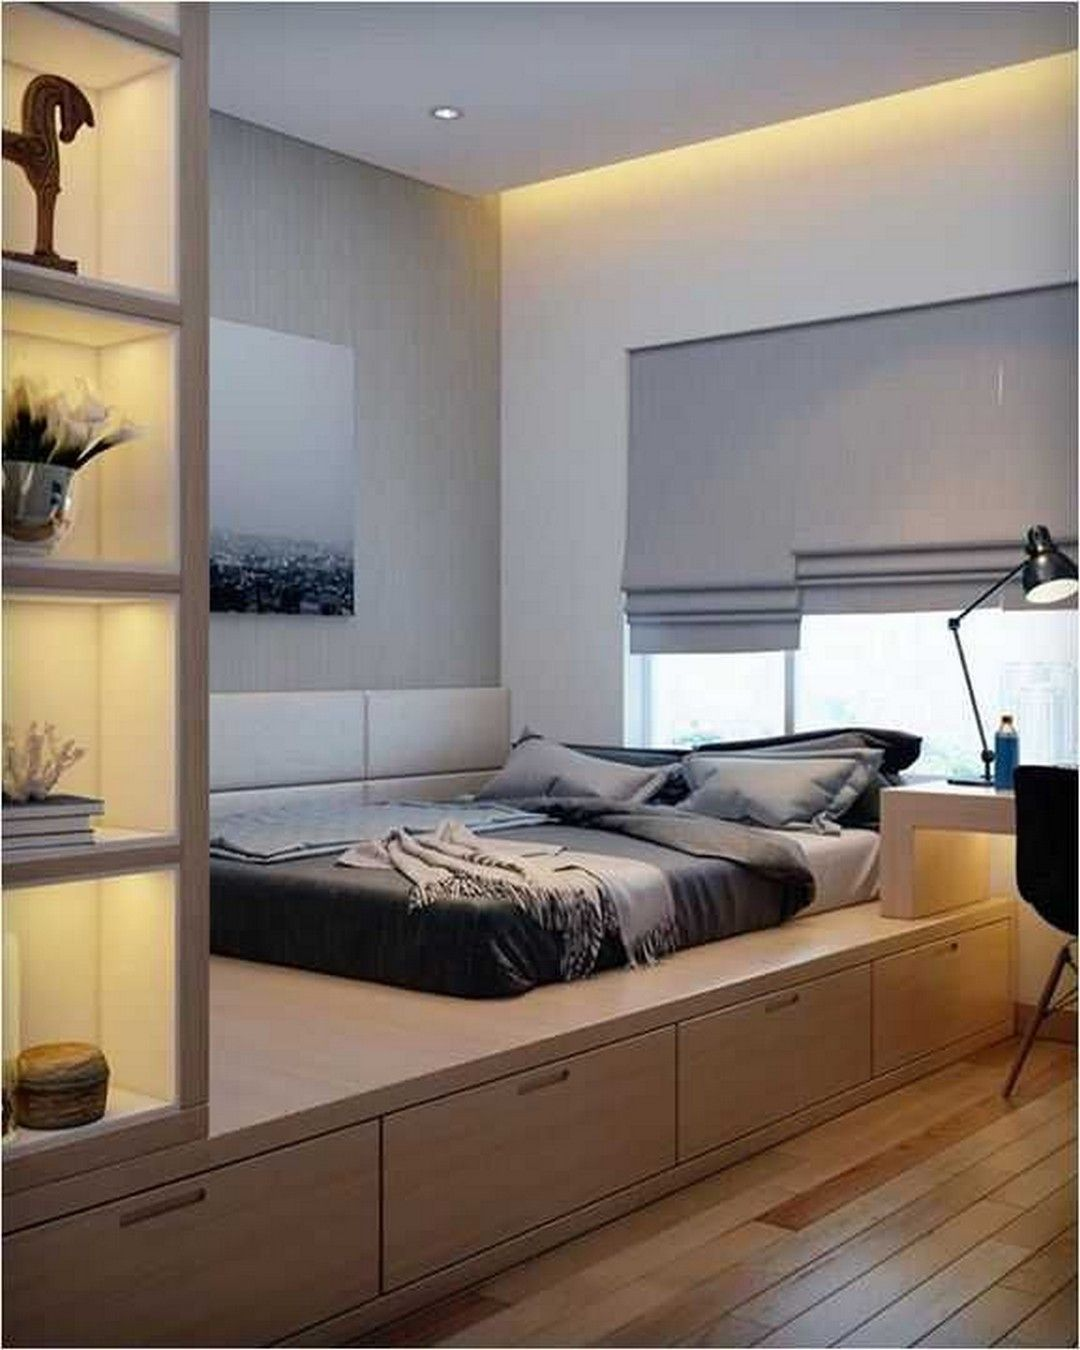 Modern Smallhouse Home: The Minimalistic Japanese Bedroom Theme Is Now Purchase